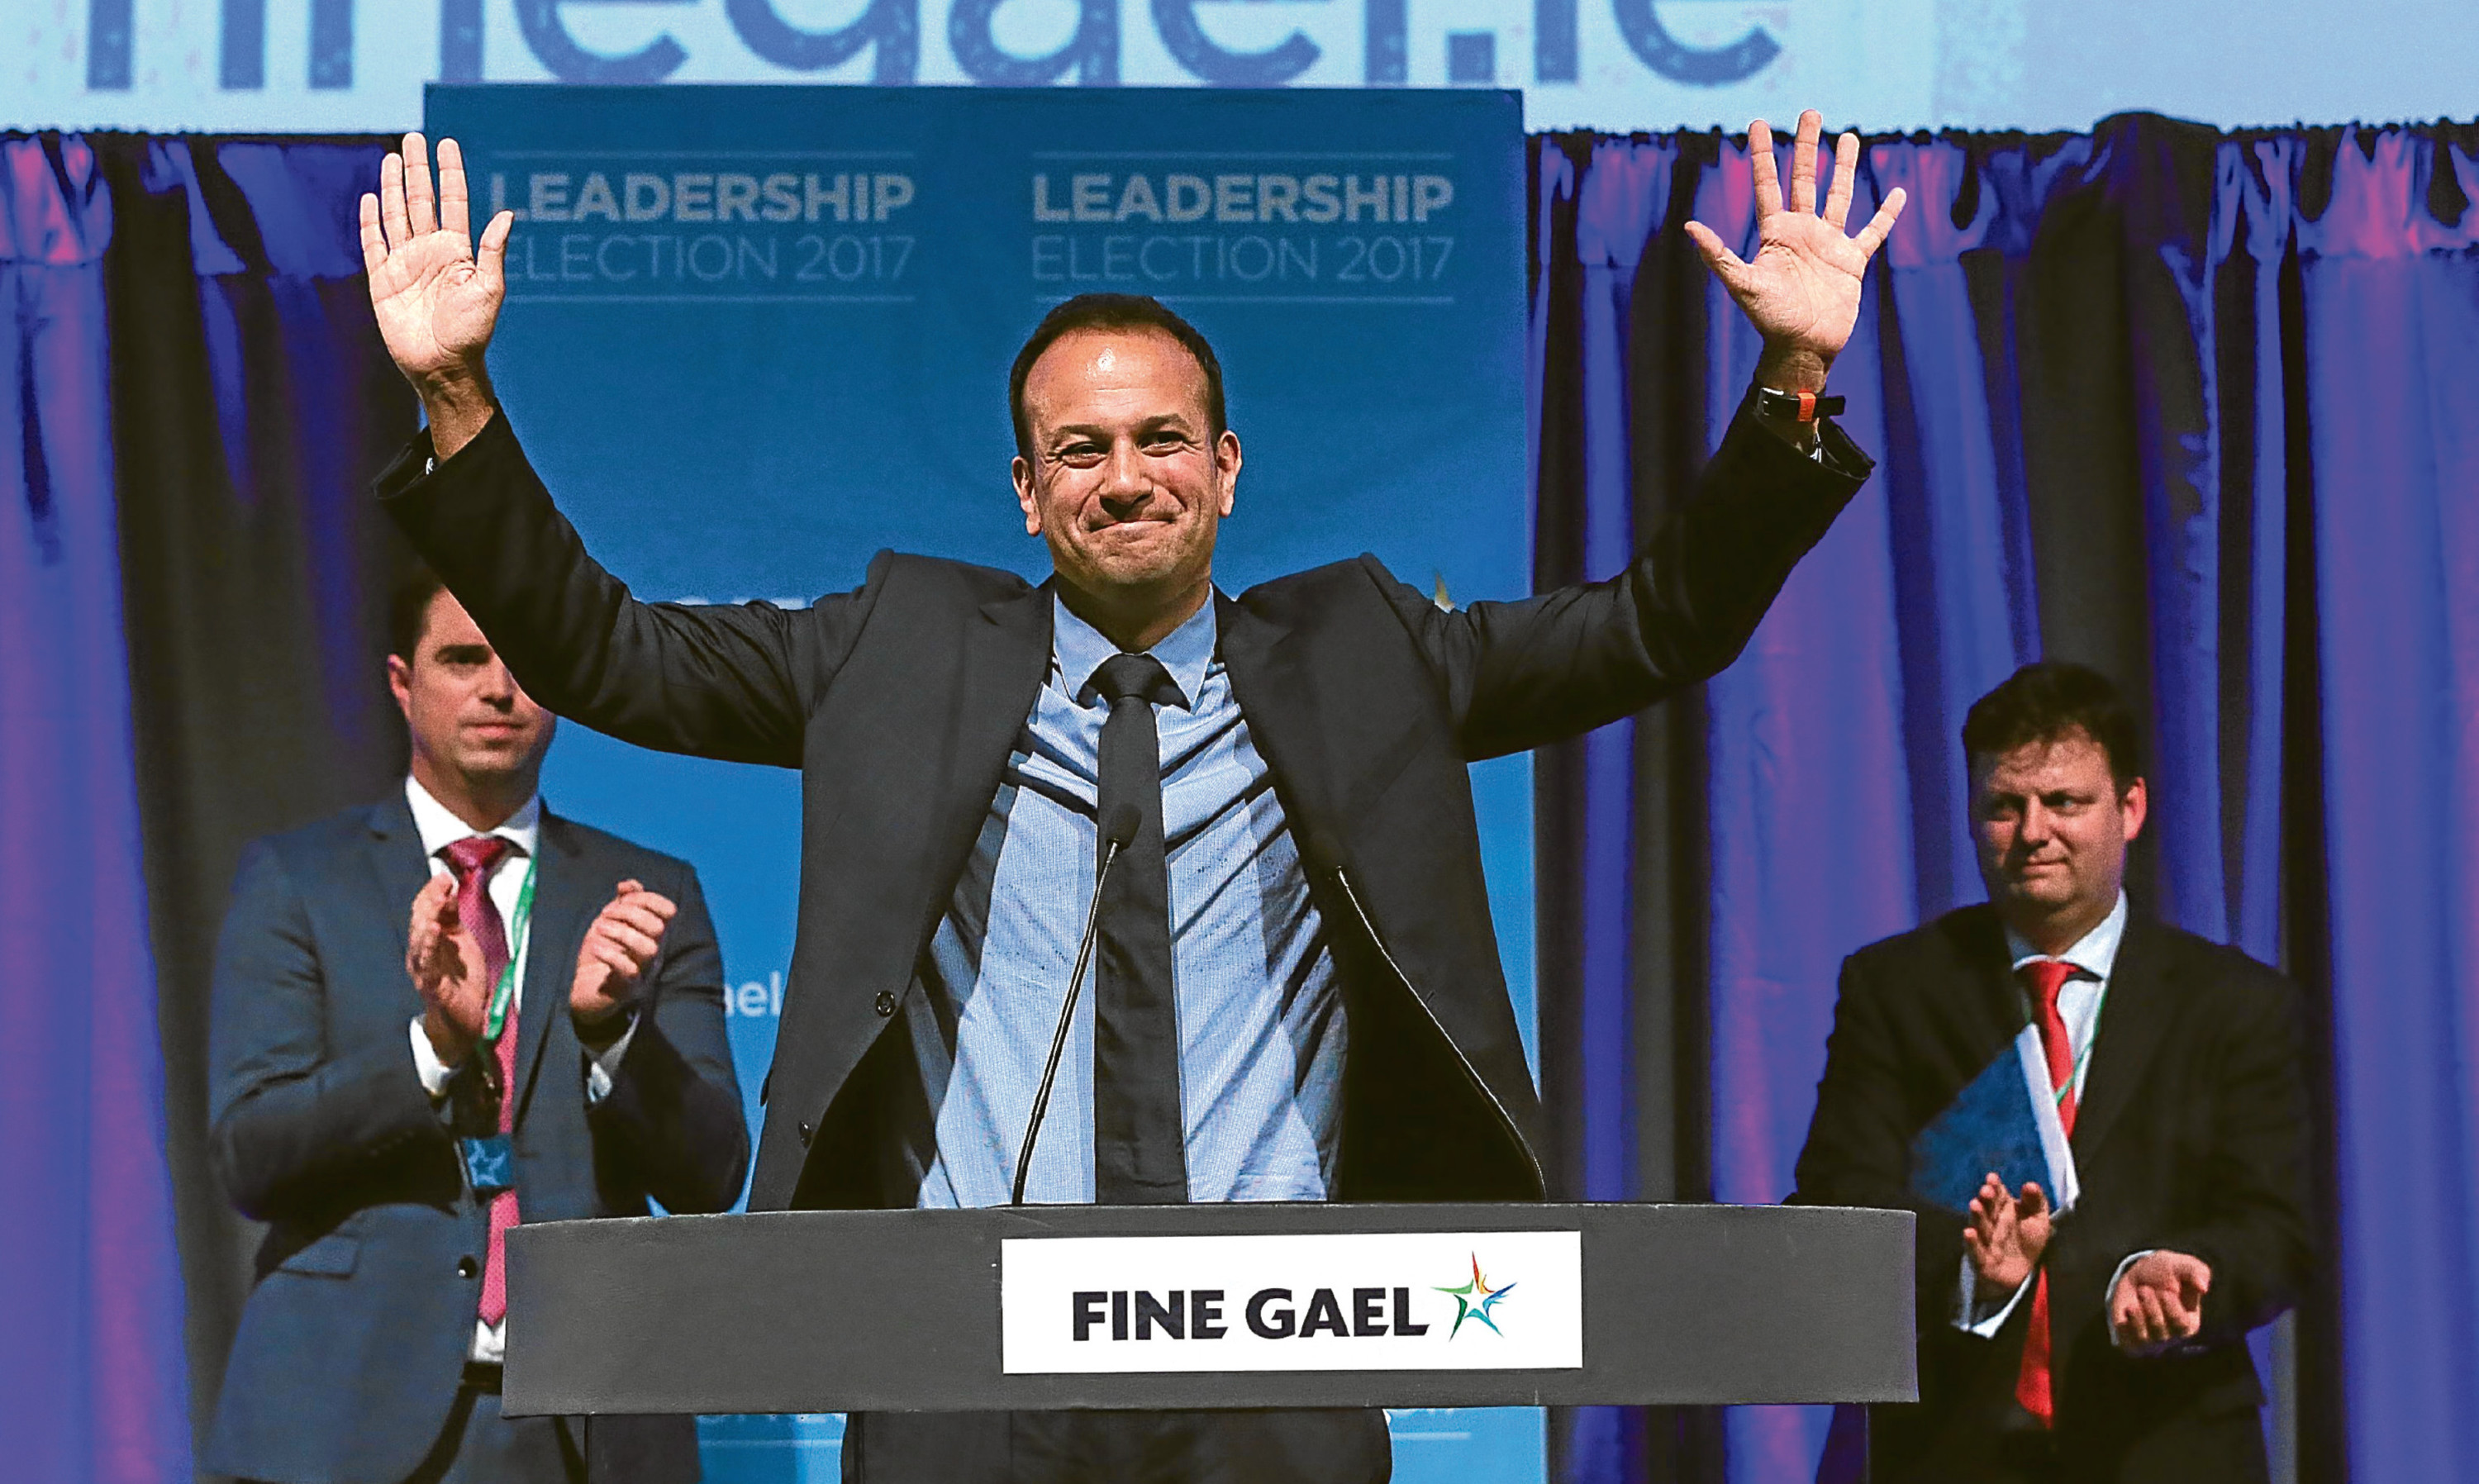 Leo Varadkar, the gay son of an Indian immigrant, celebrates being elected leader of Fine Gael. To Alex, he is a symbol of how countries can change.